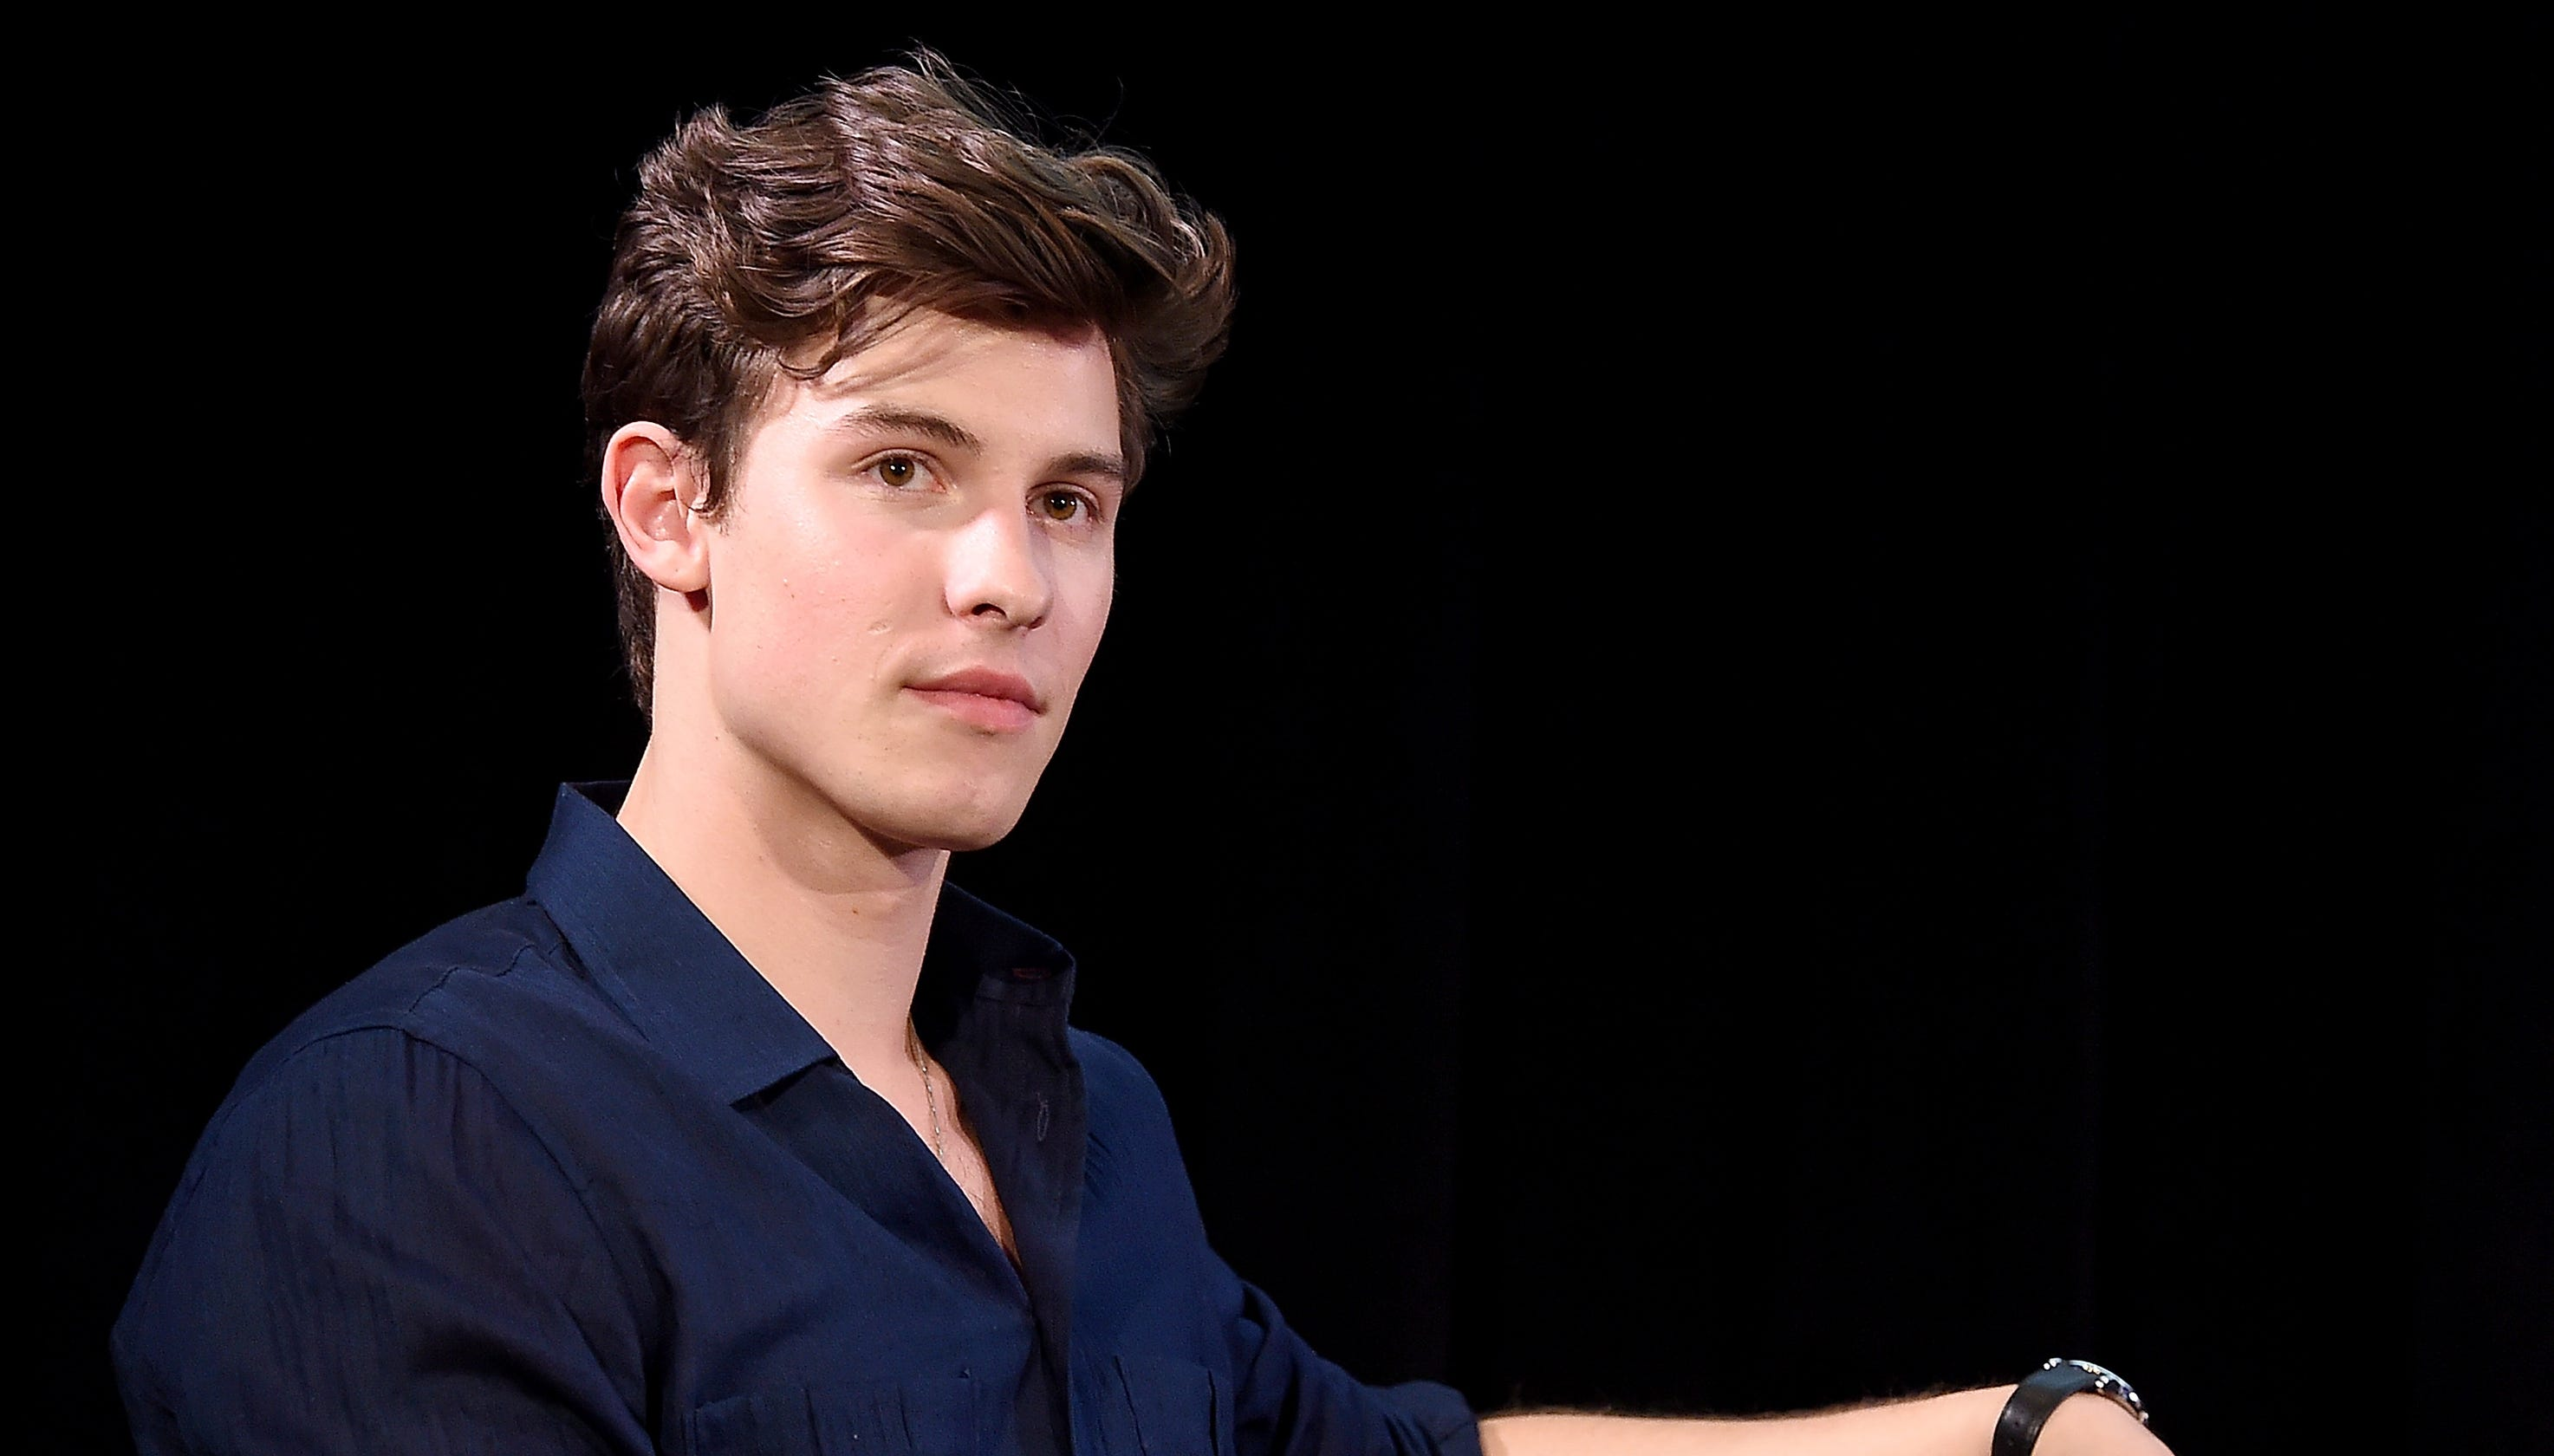 973d23016 Shawn Mendes feels pressured to 'prove' he's not gay